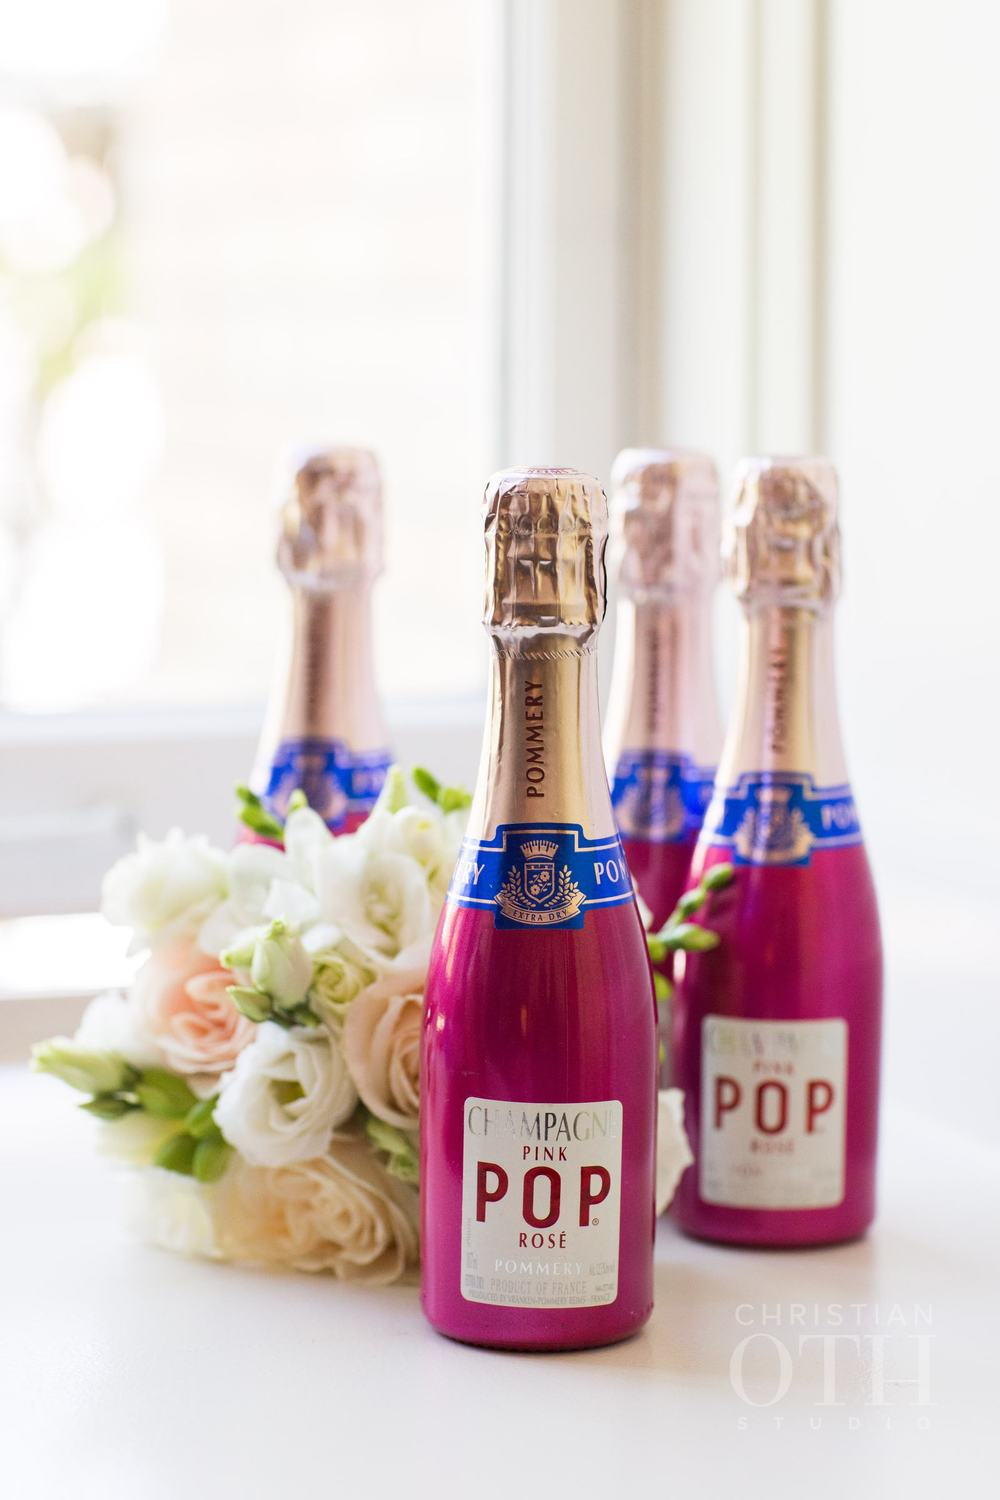 PINK POPS OF BUBBLY